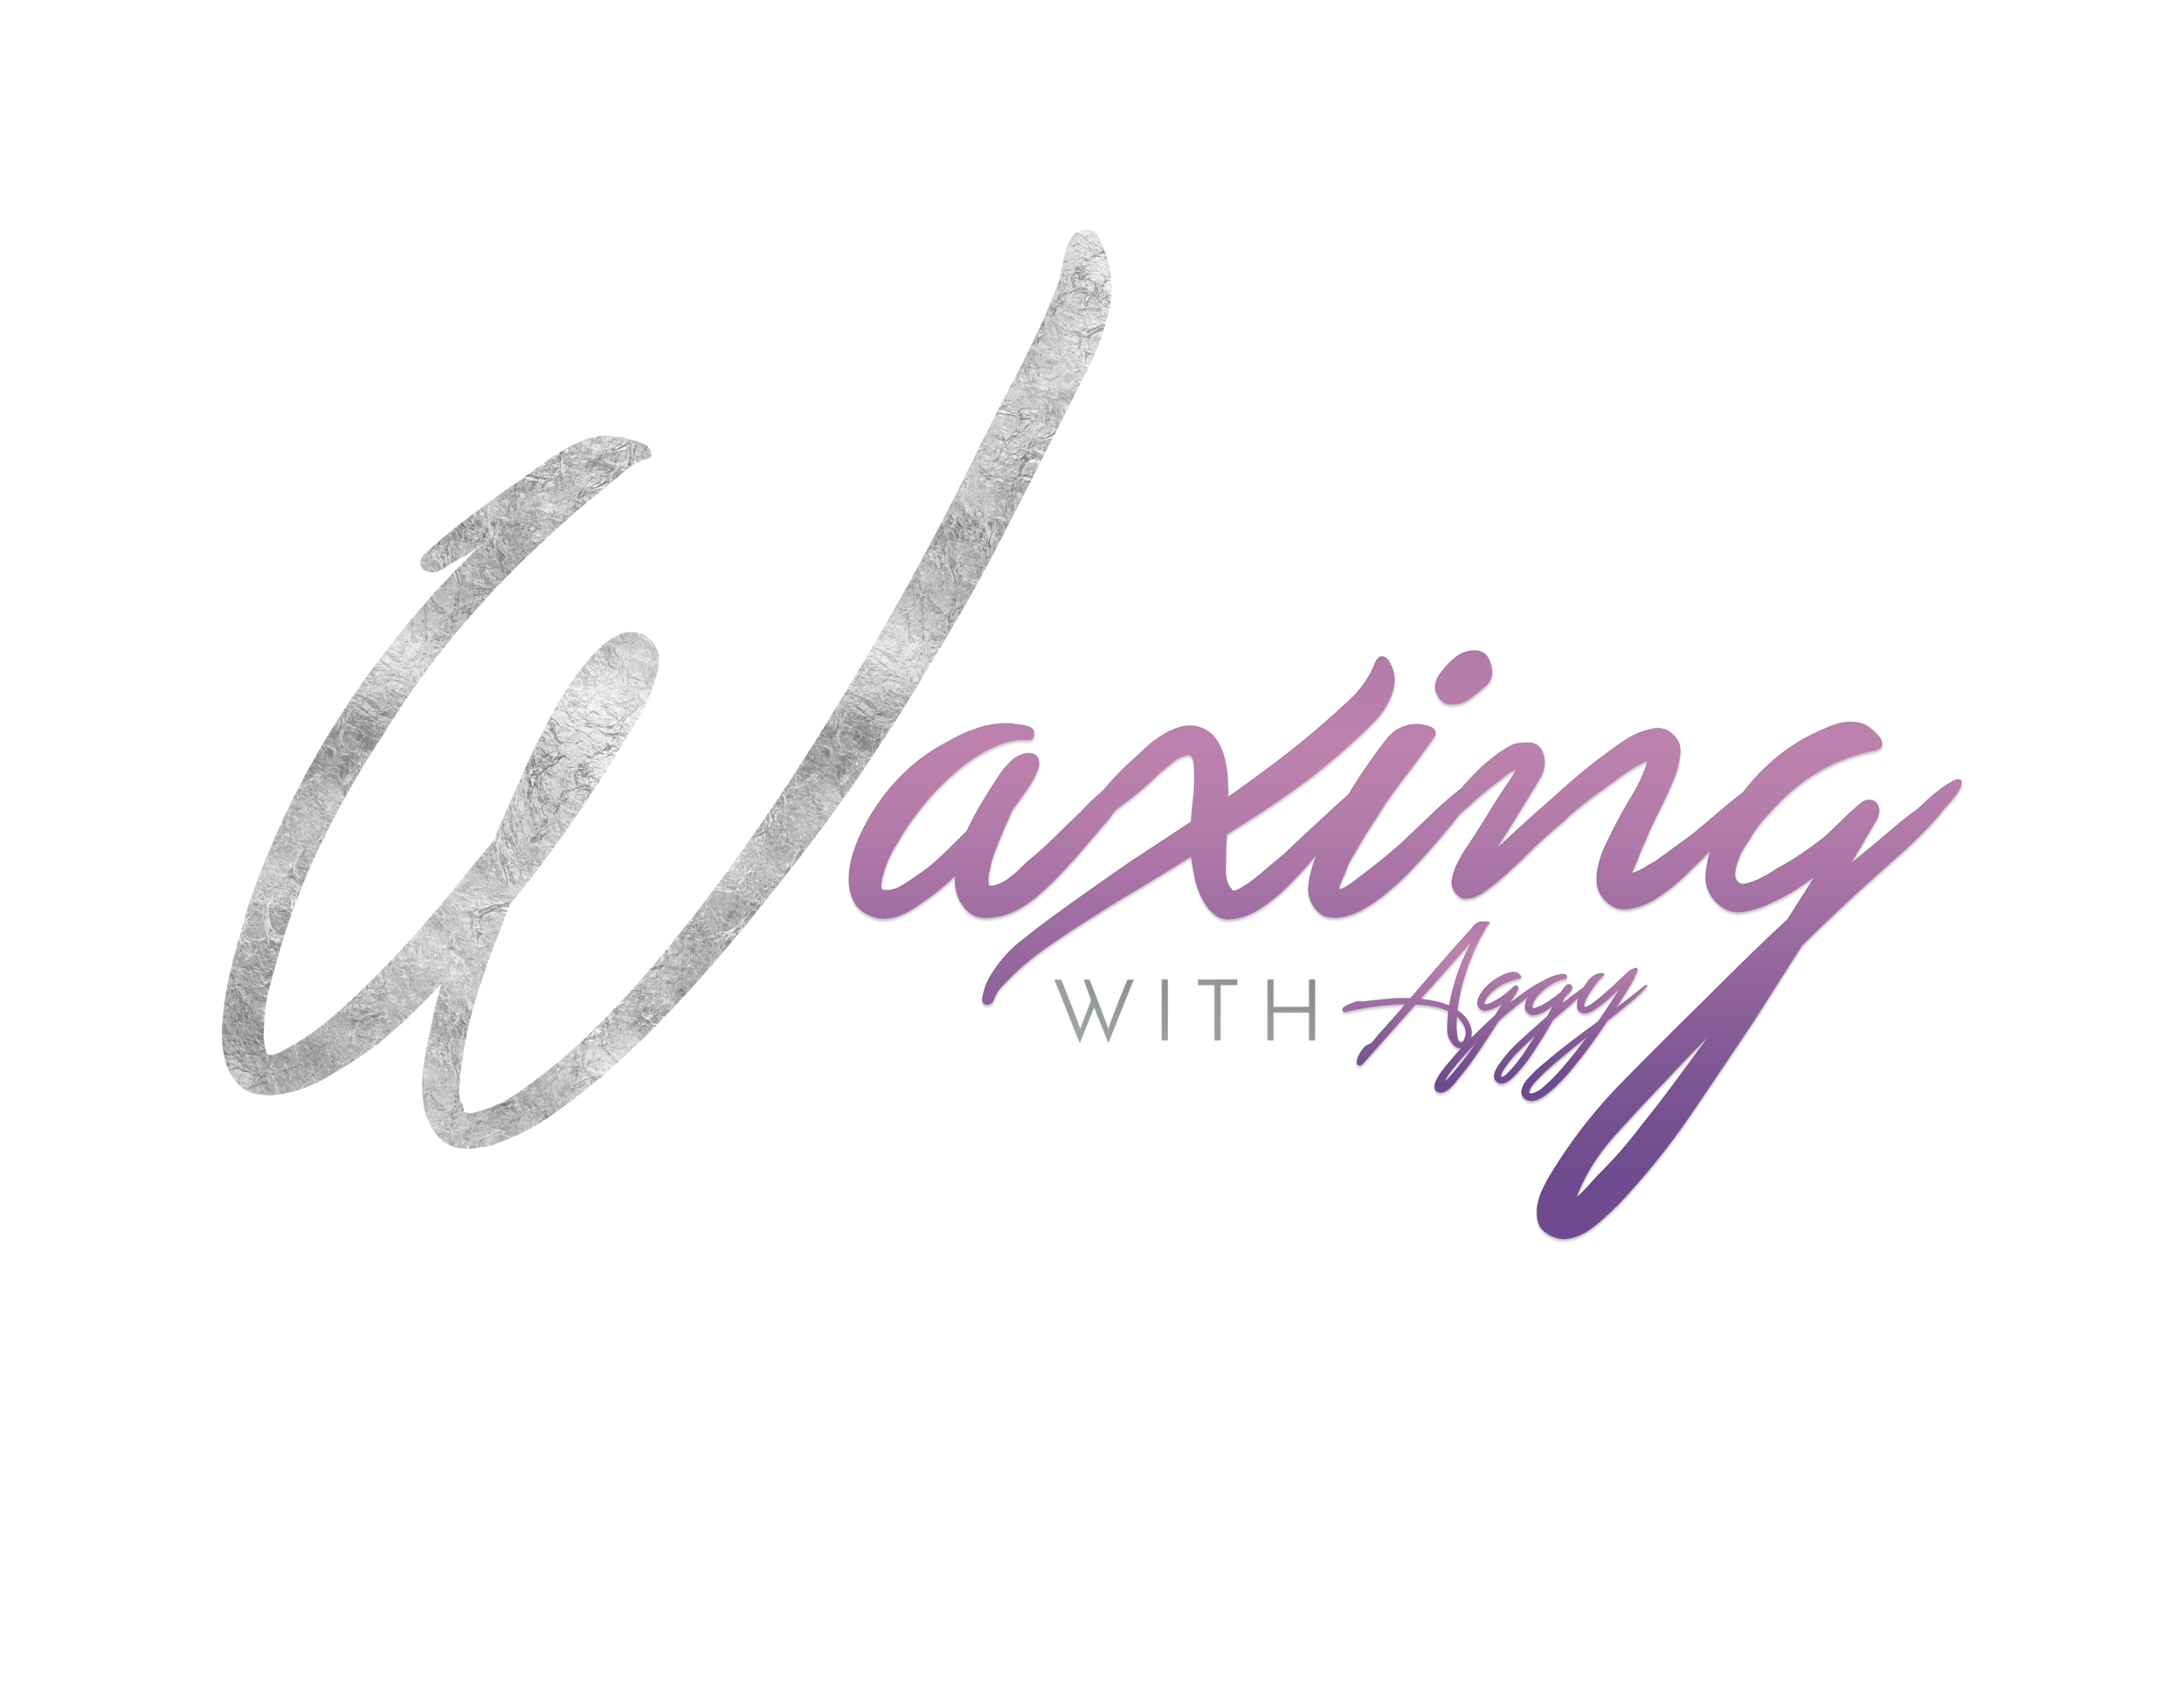 Waxing With Aggy LOGO.png